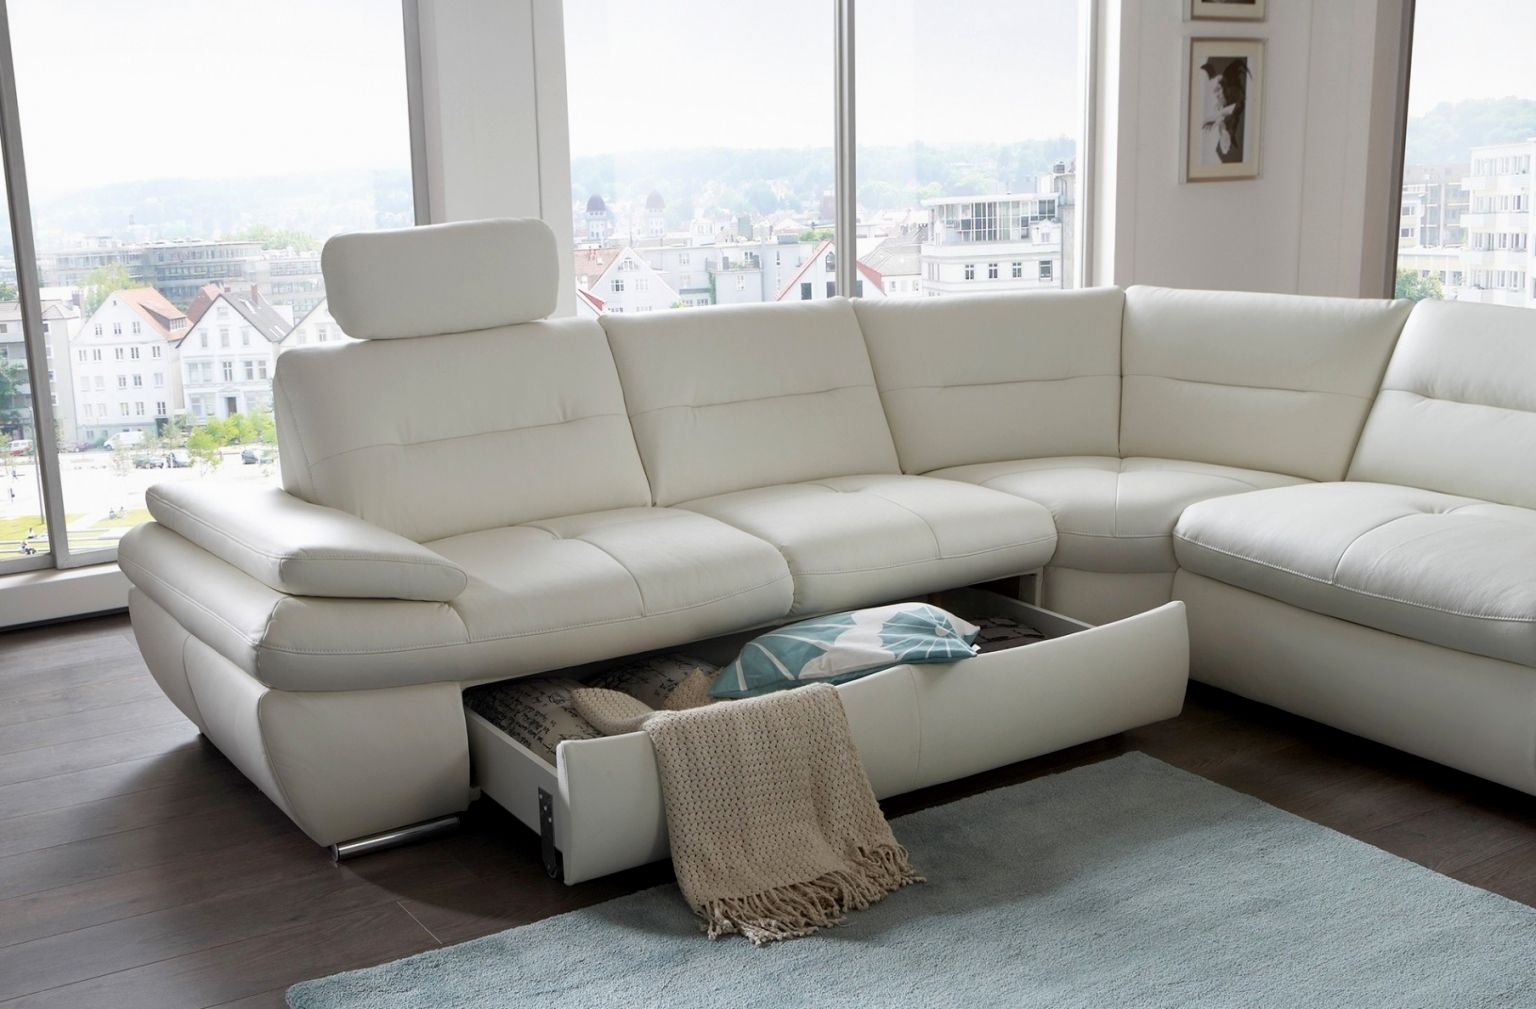 lovely faux leather sleeper sofa ideas-Unique Faux Leather Sleeper sofa Photograph